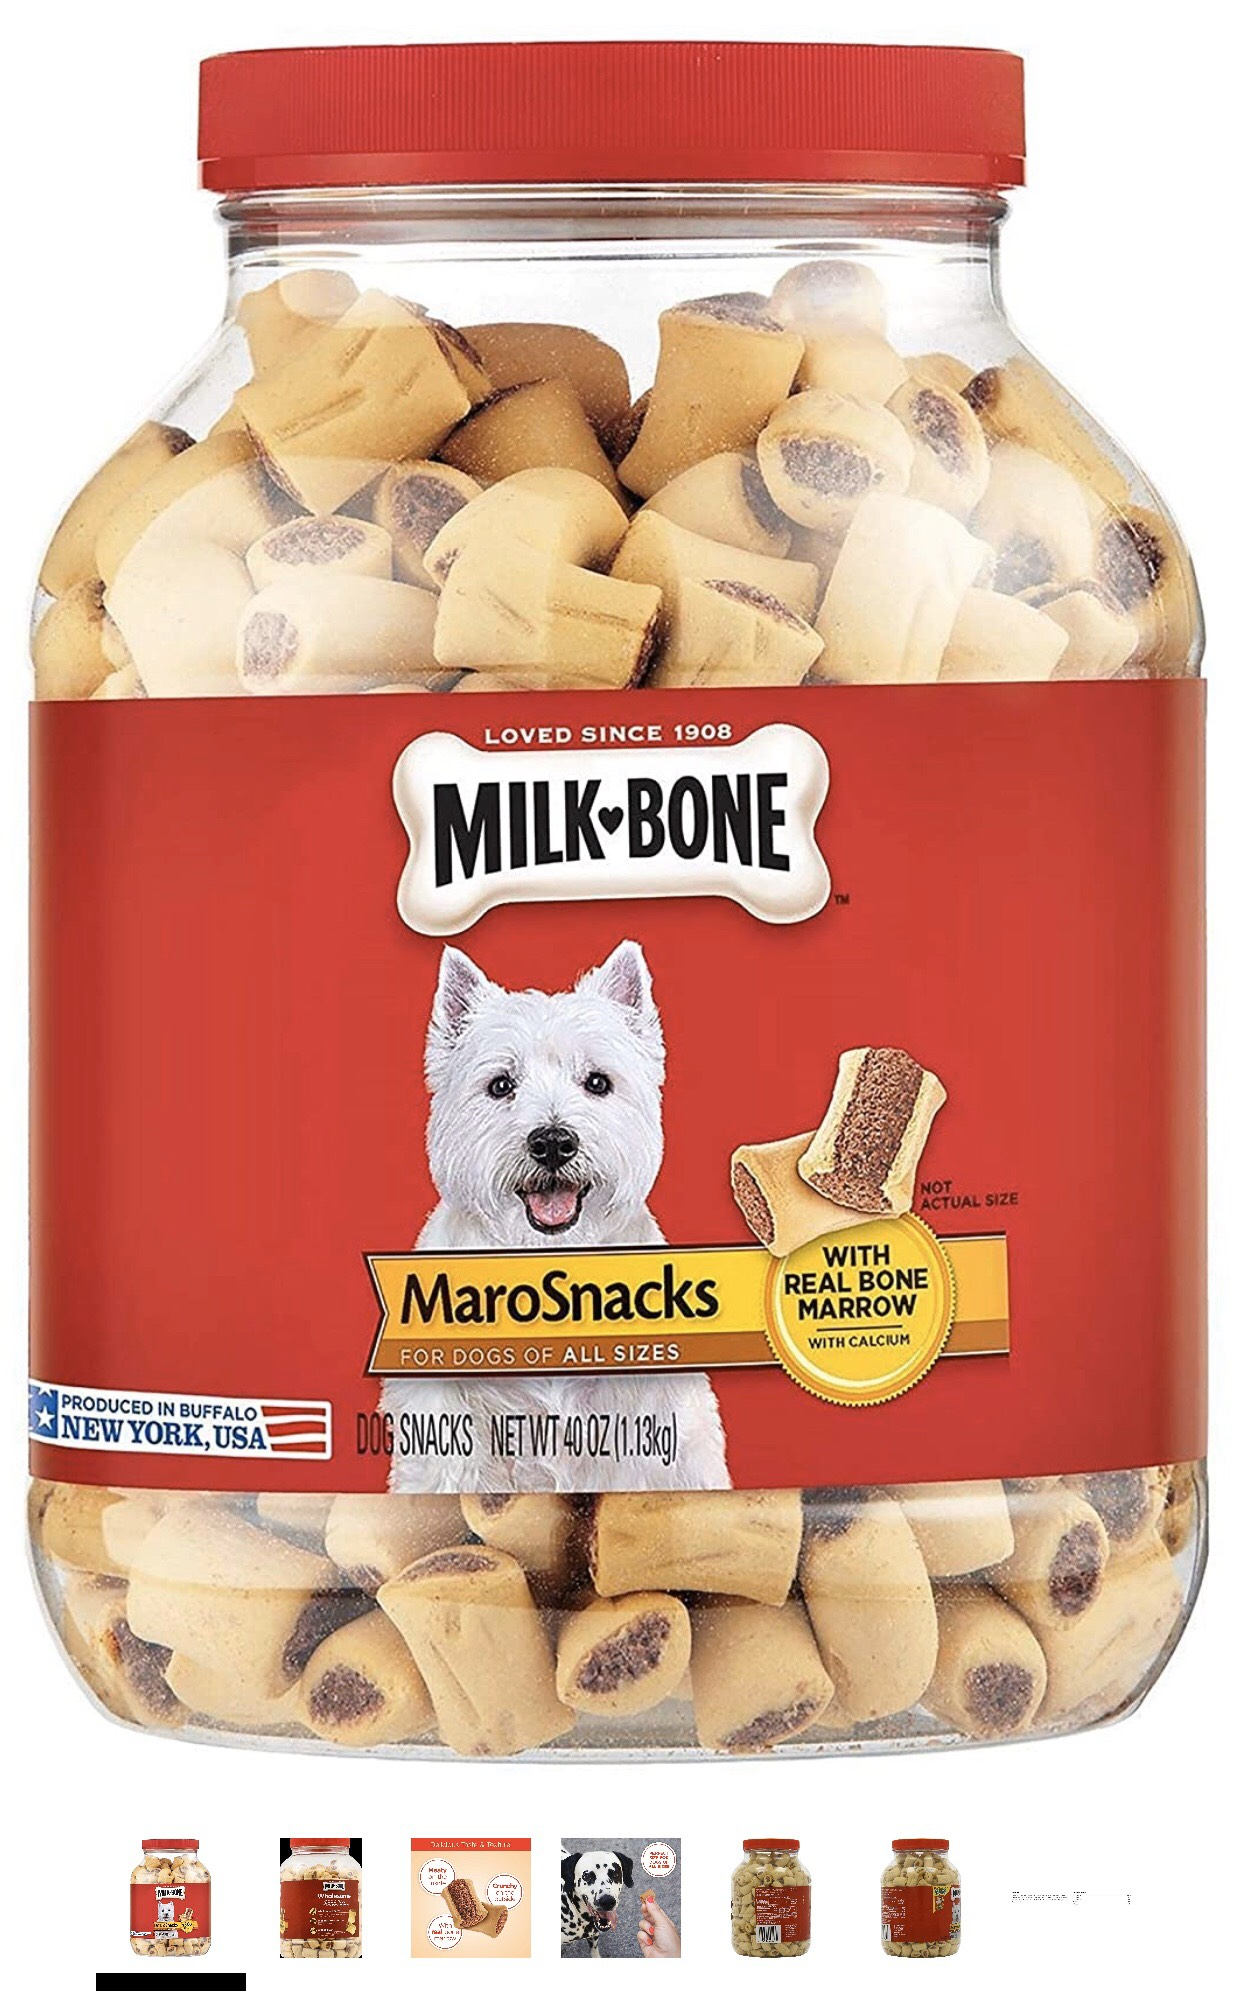 Milk-Bone MaroSnacks Dog Treats for Dogs of All Sizes 1.13kg